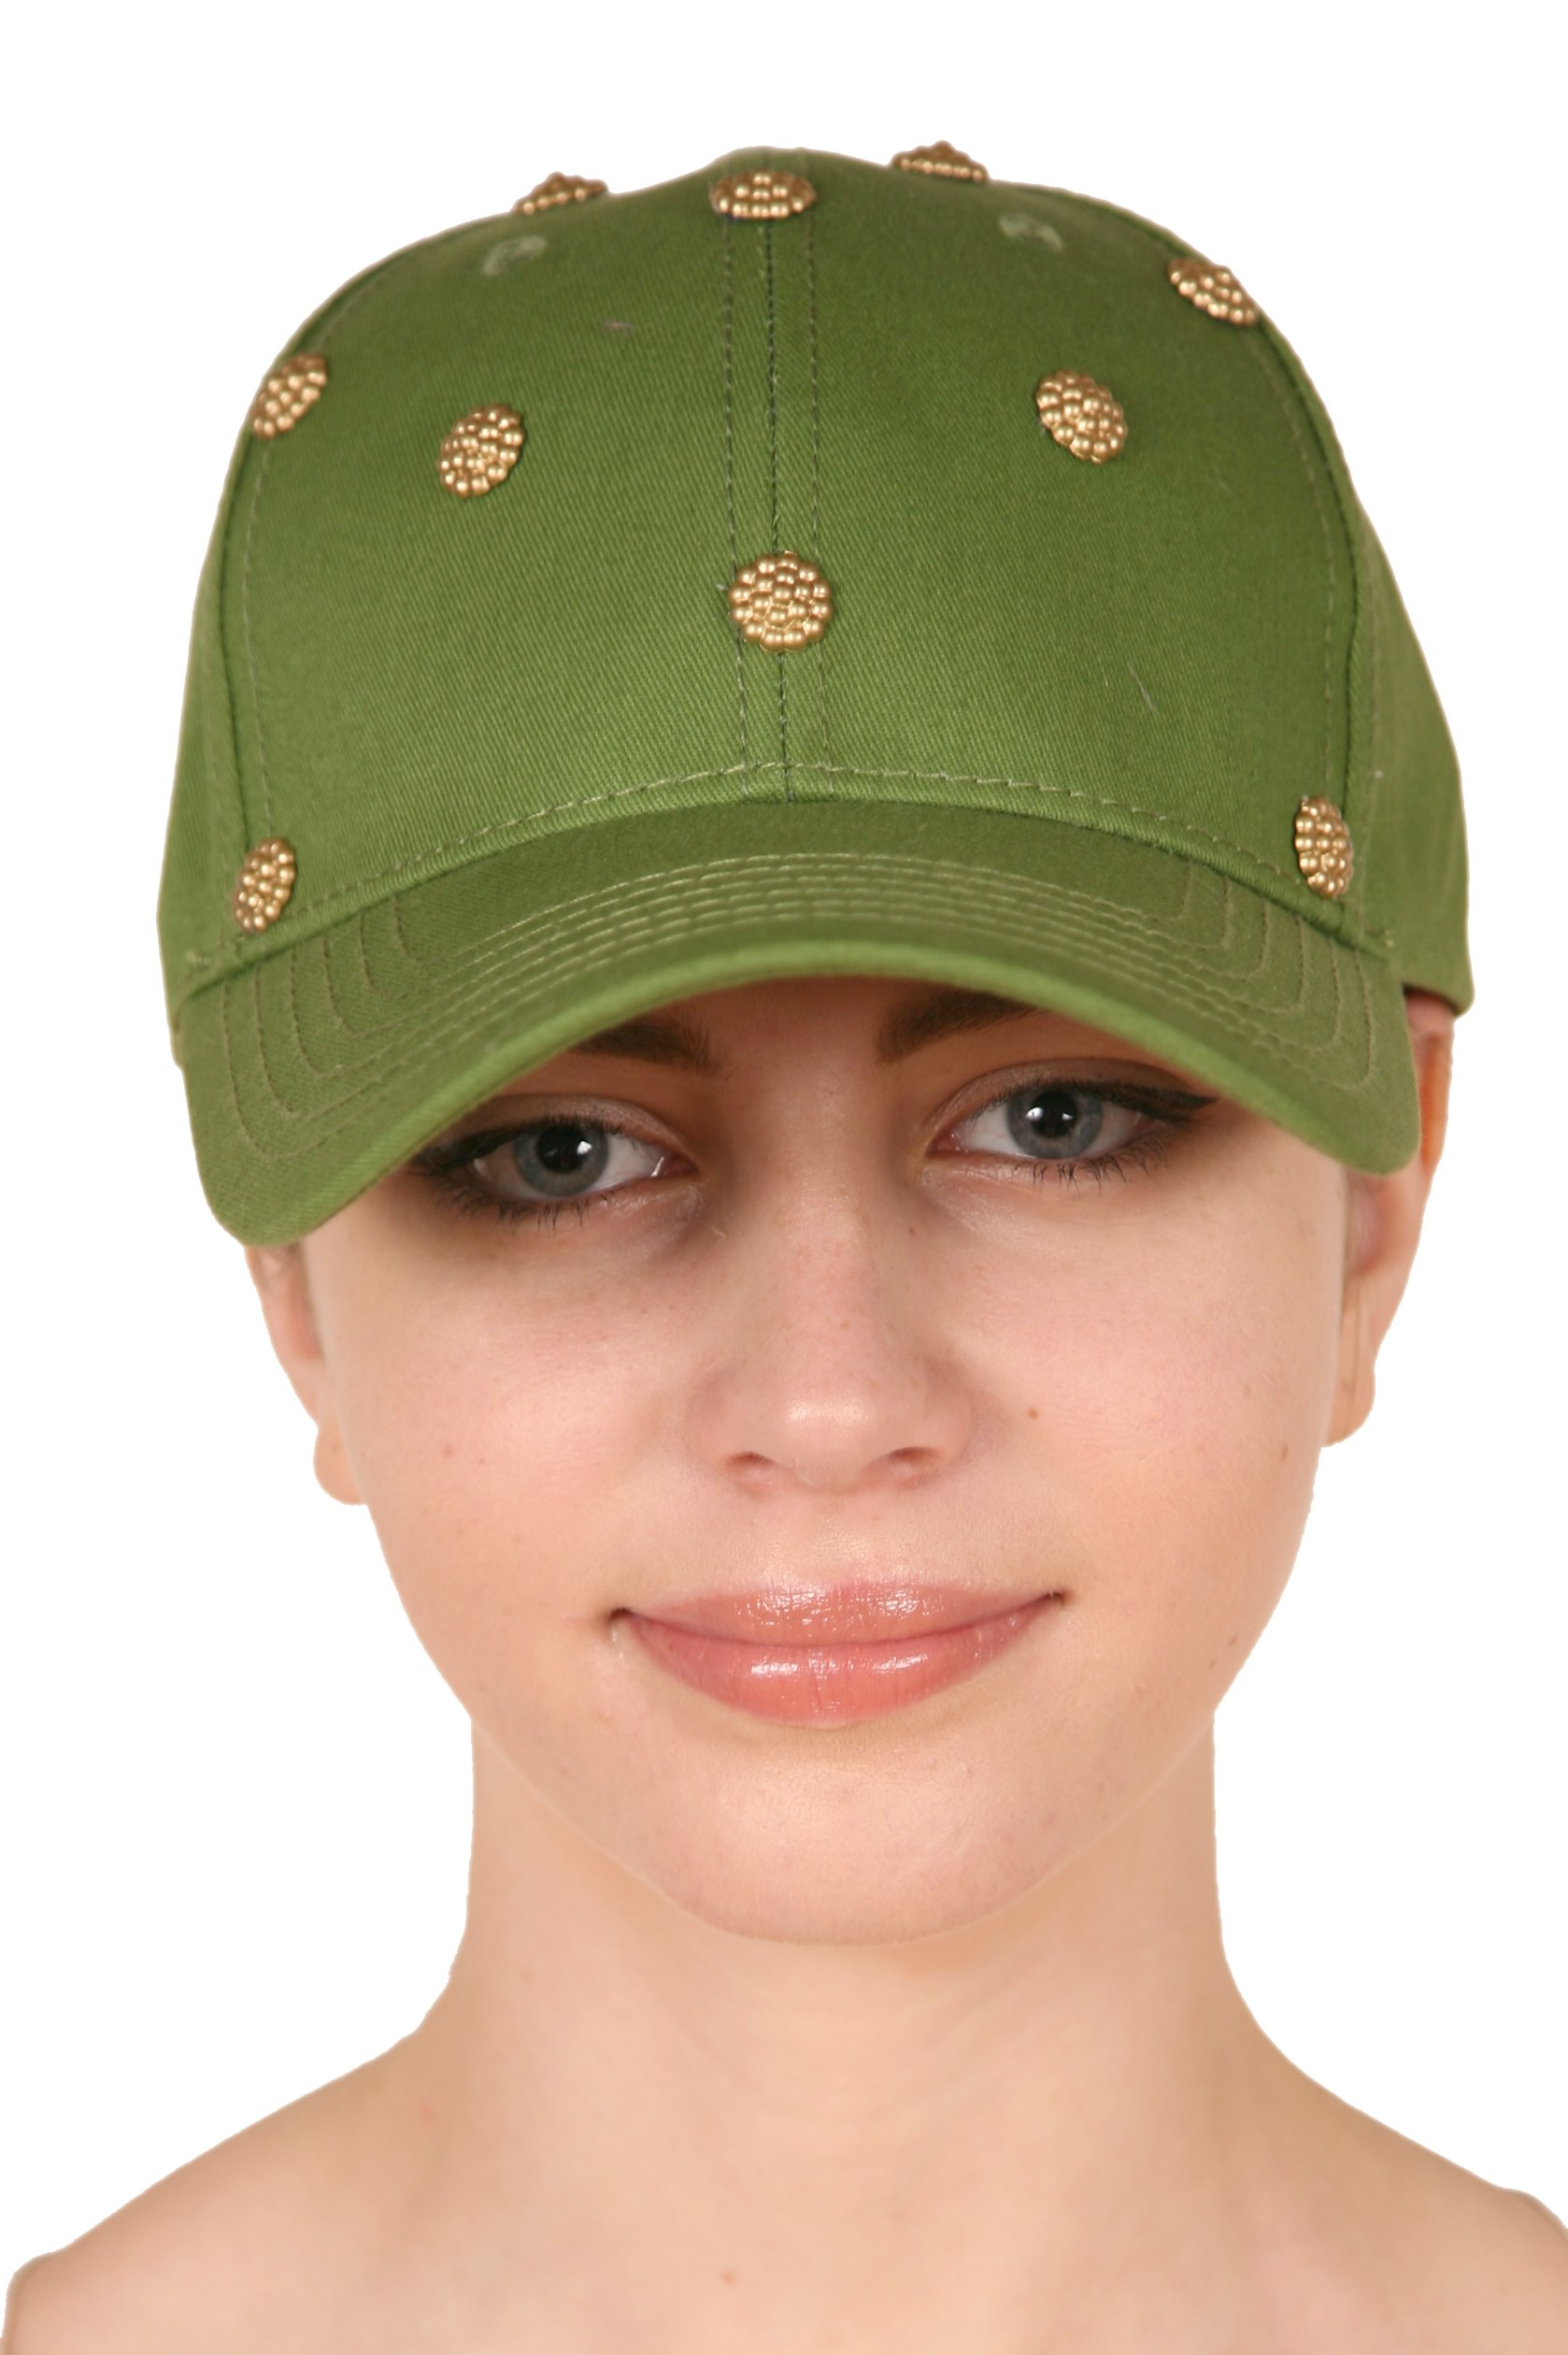 Love Lakeside Solid Color Baseball Cap, Hat Embellished, Adjustable, Cotton Blend Moss Green With Gold